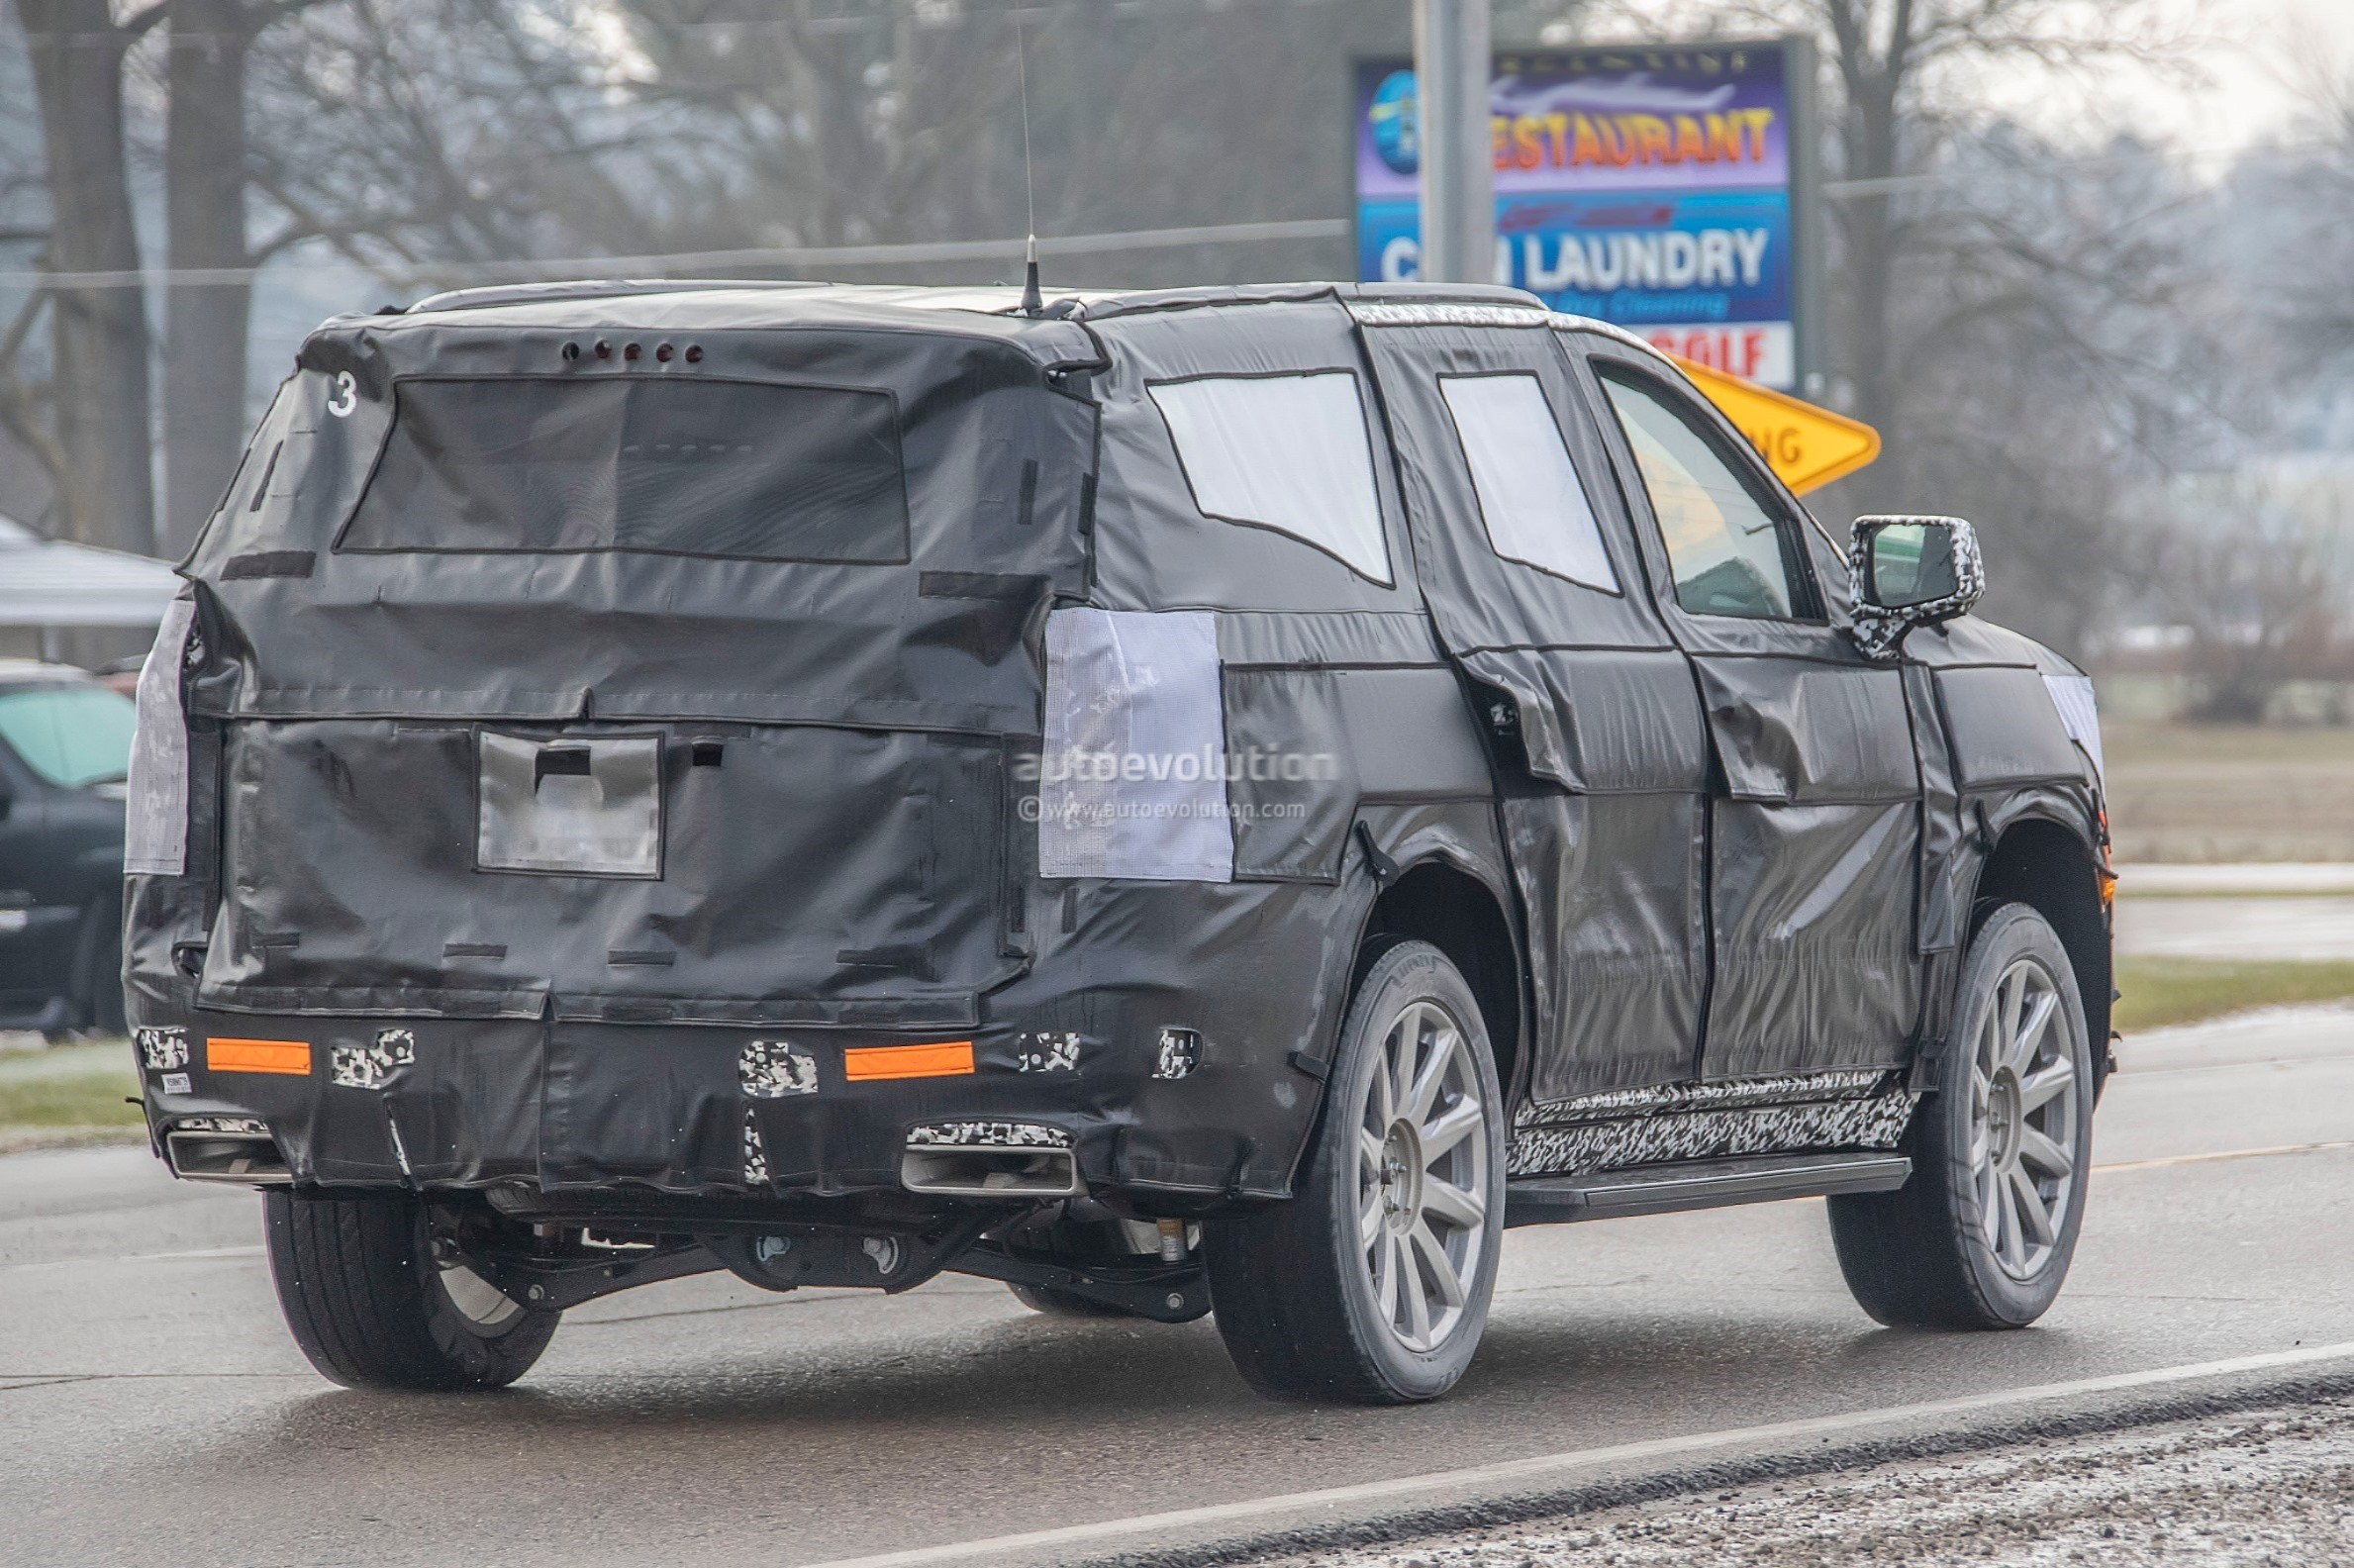 202 - [Cadillac] Escalade V 2020-cadillac-escalade-spied-with-makeshift-dodge-ram-crosshair-grille_29